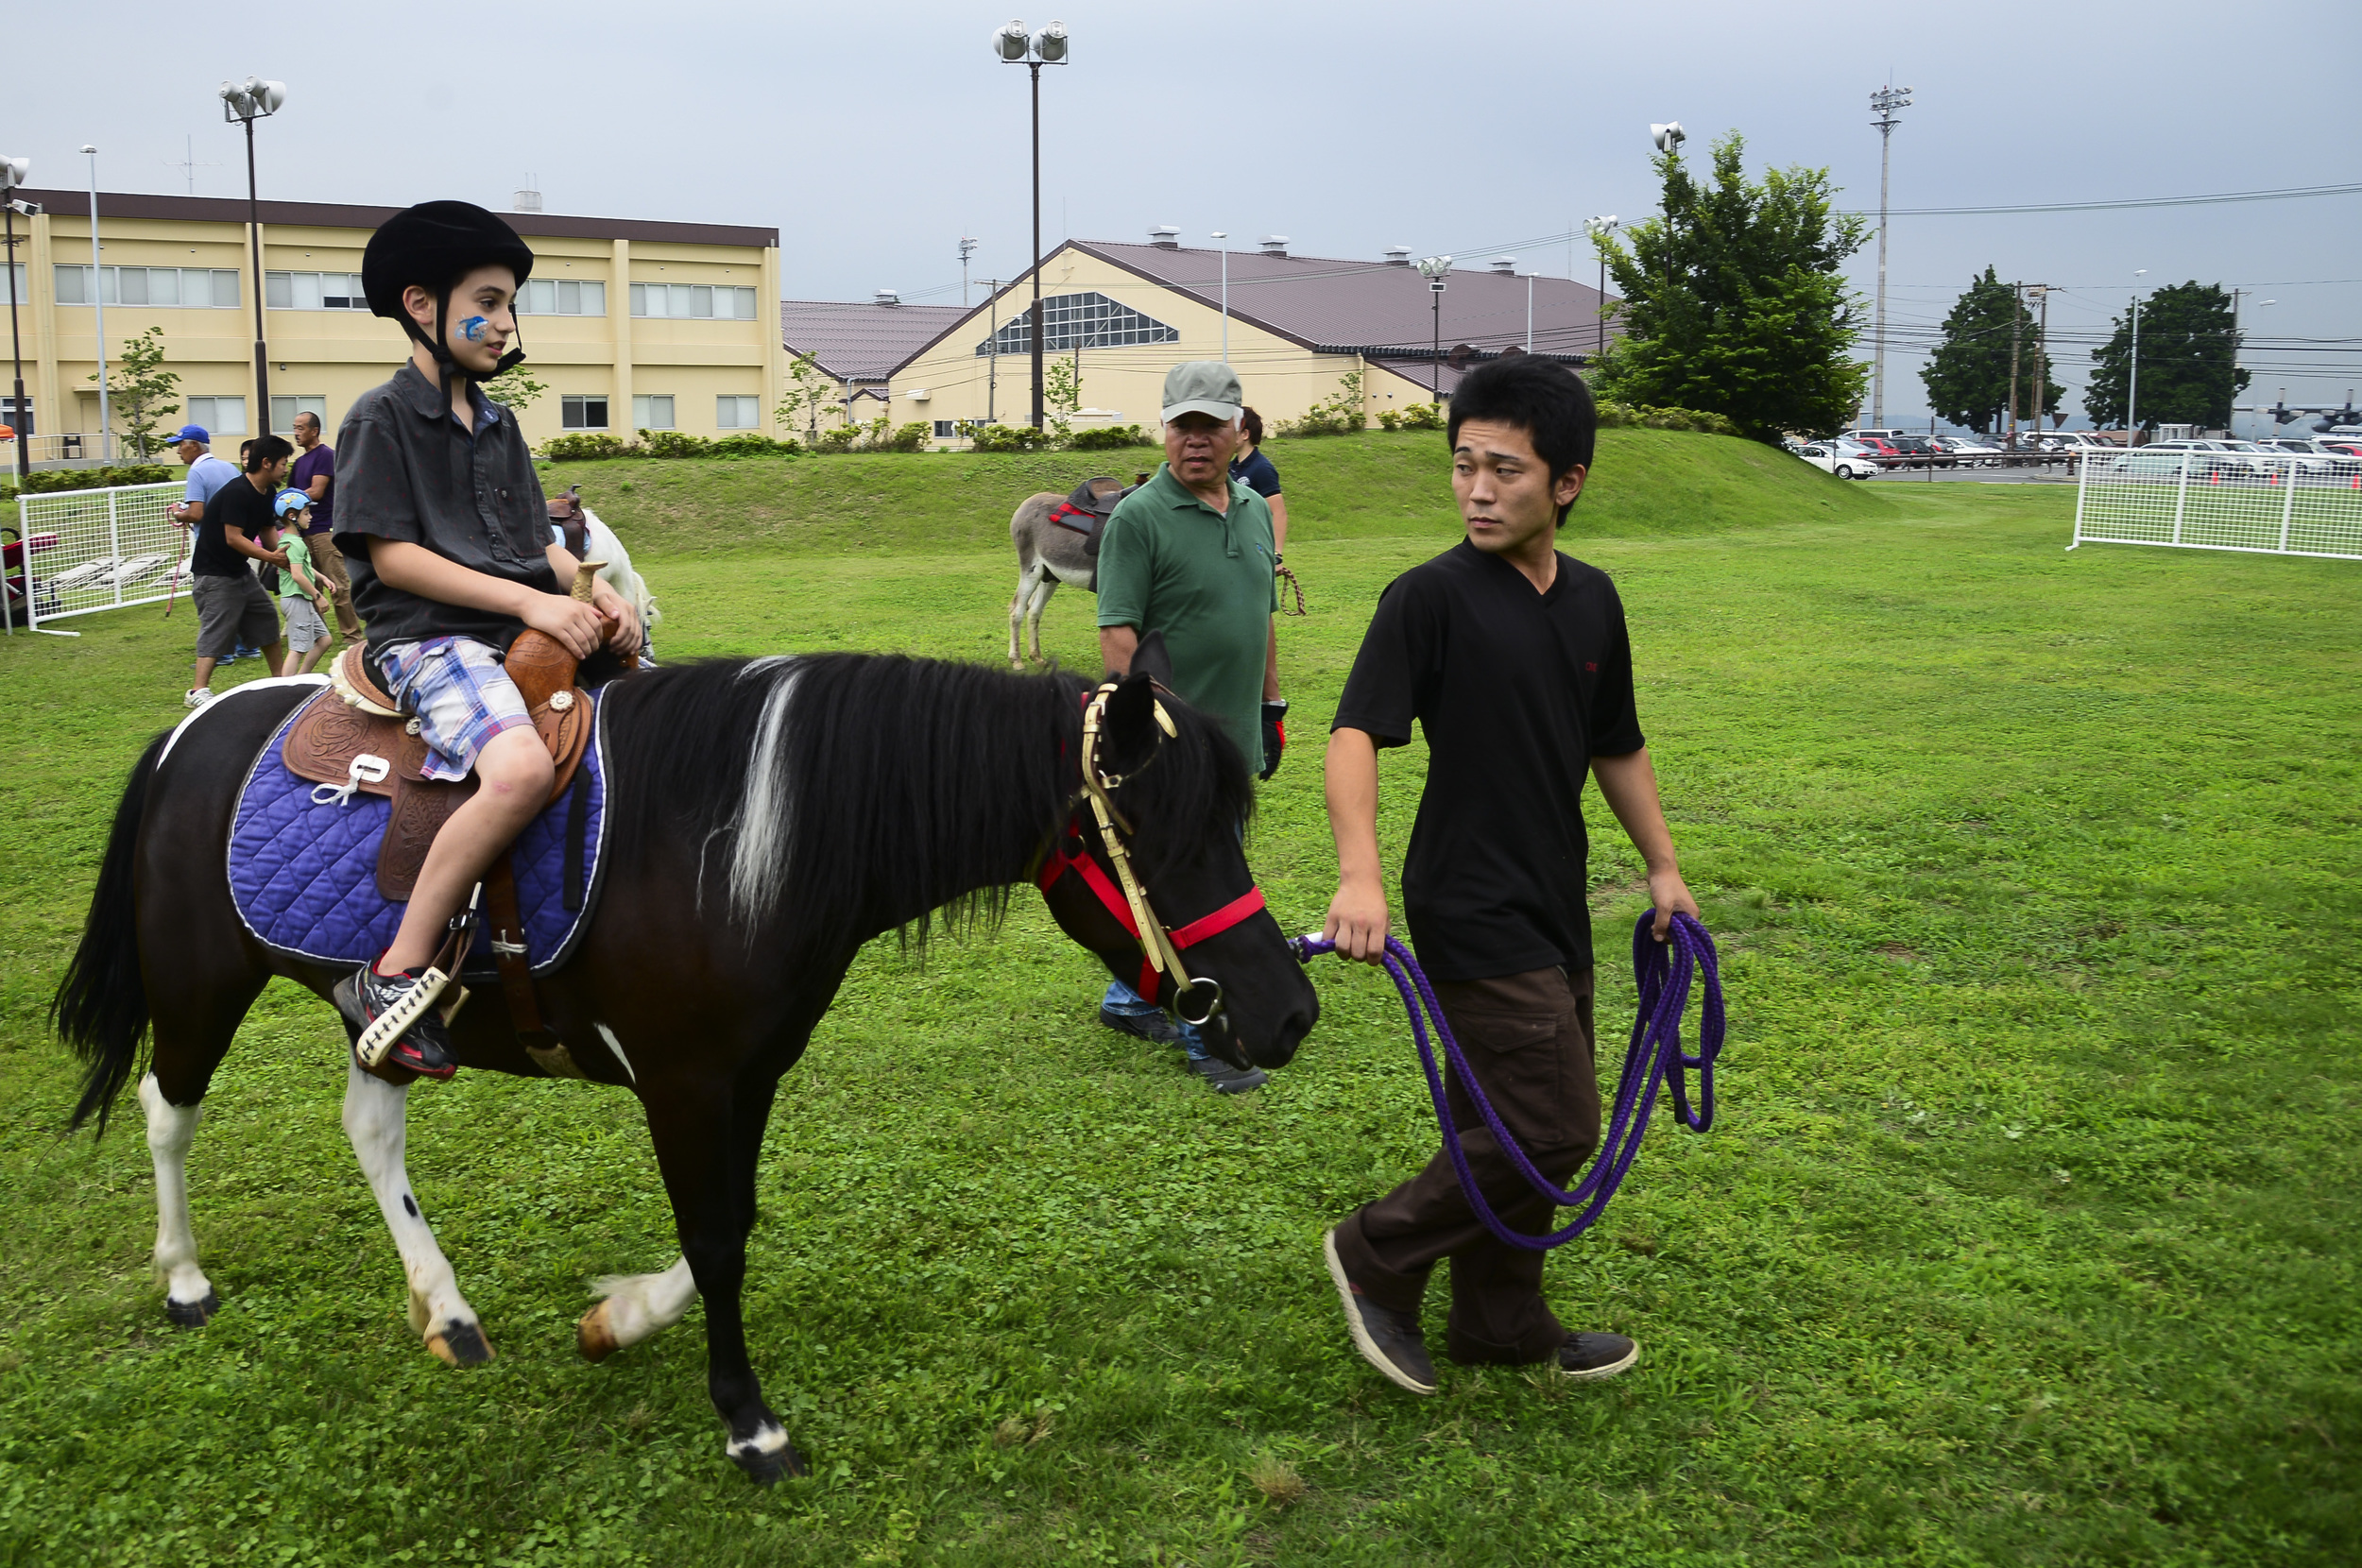 Radek Hungler, 9, son of David Hungler, 374th Office of Special Investigations special agent, rides a pony during the Celebrate America event at Yokota Air Base, Japan, July 2, 2015. The annual event provided military members and their families the opportunity to enjoy games, food and bands before culminating in a fireworks display to celebrate Independence Day. (U.S. Air Force photo by Senior Airman David Owsianka/Released)